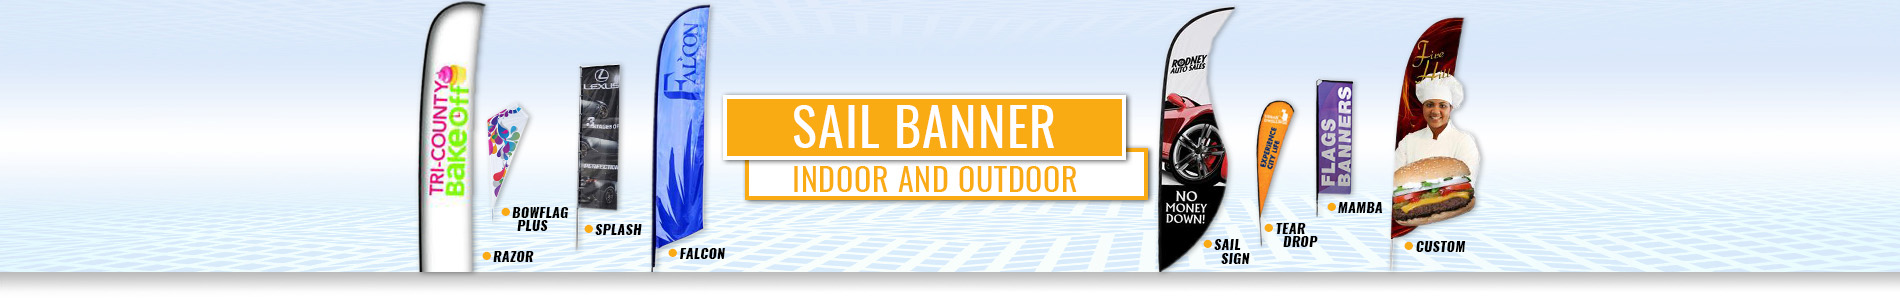 Outdoor Sail Banners & Flying Flag Banners